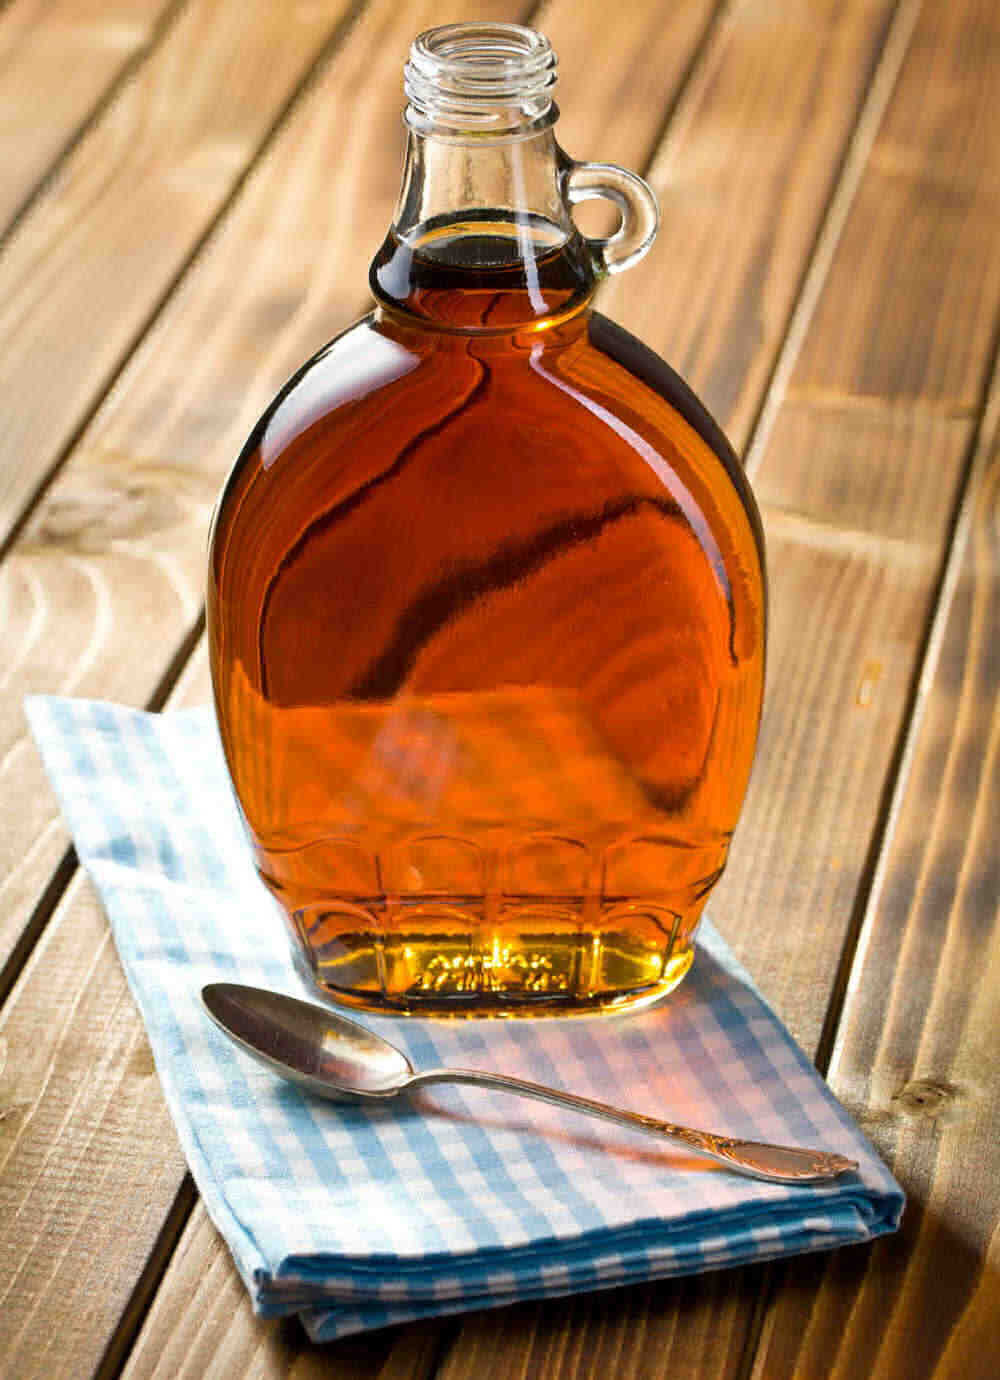 Maple syrup in a bottle on a blue napkin with a spoon.